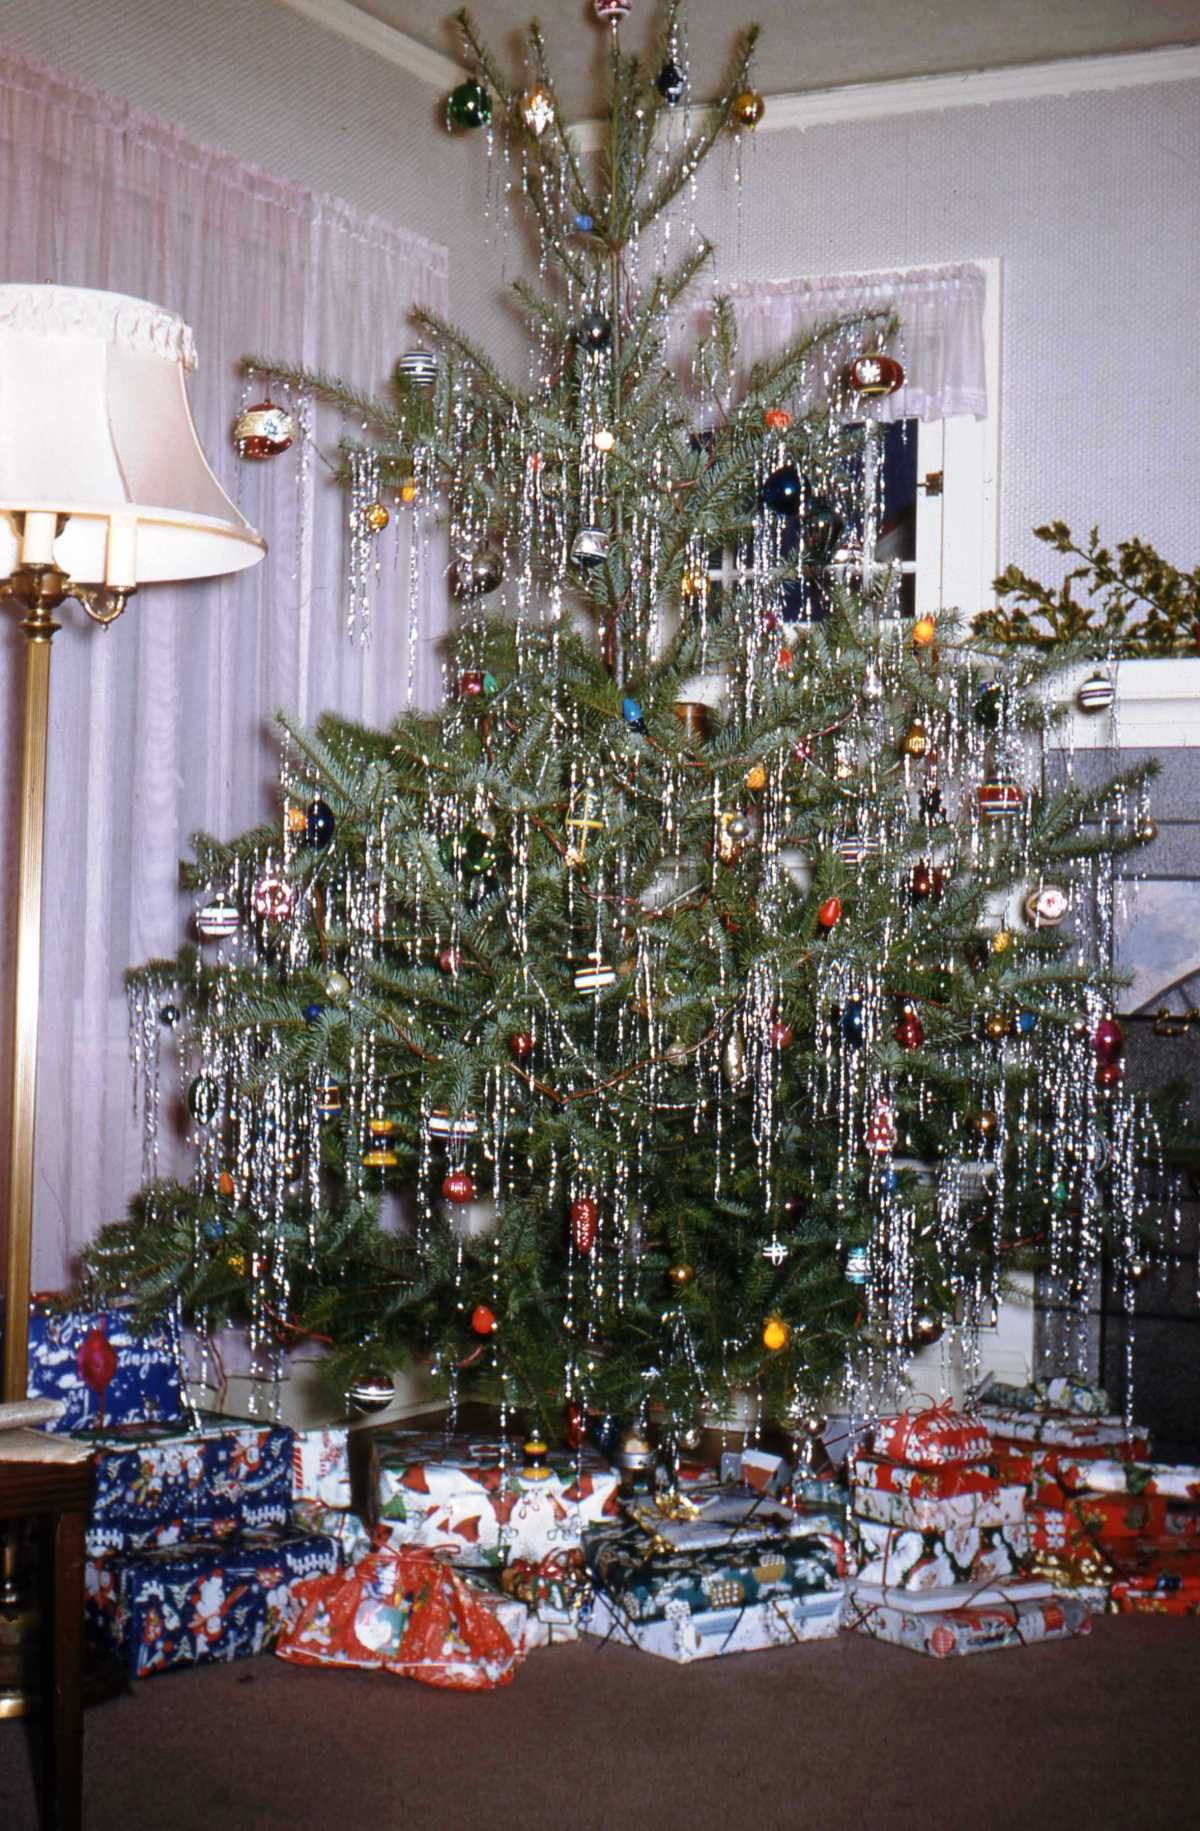 A Vintage 1950's Christmas tree. | I love trees dripping with silver ...